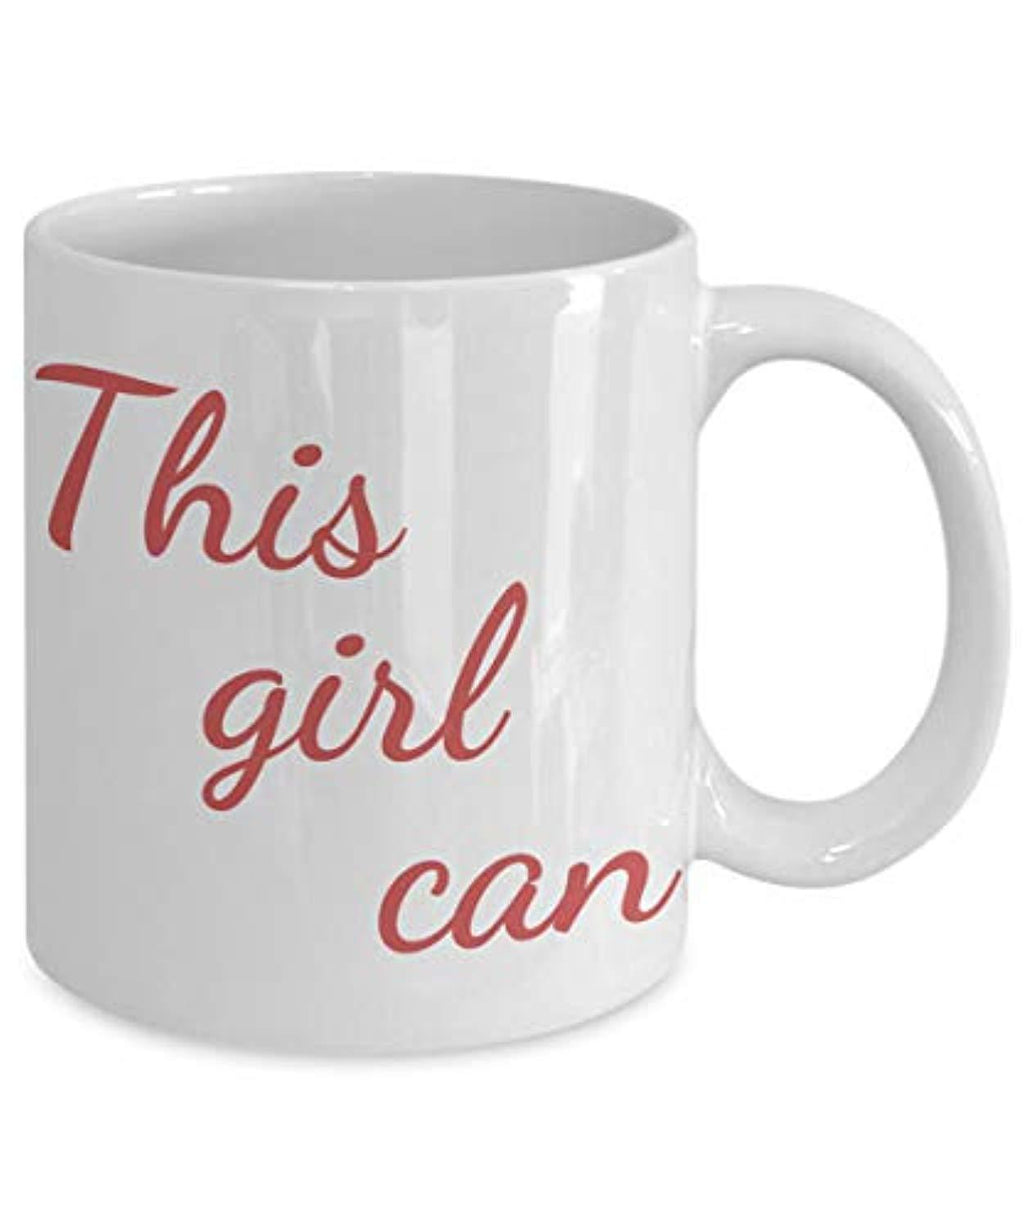 This Girl Can Motivational Inspiring Ceramic Coffee Mug